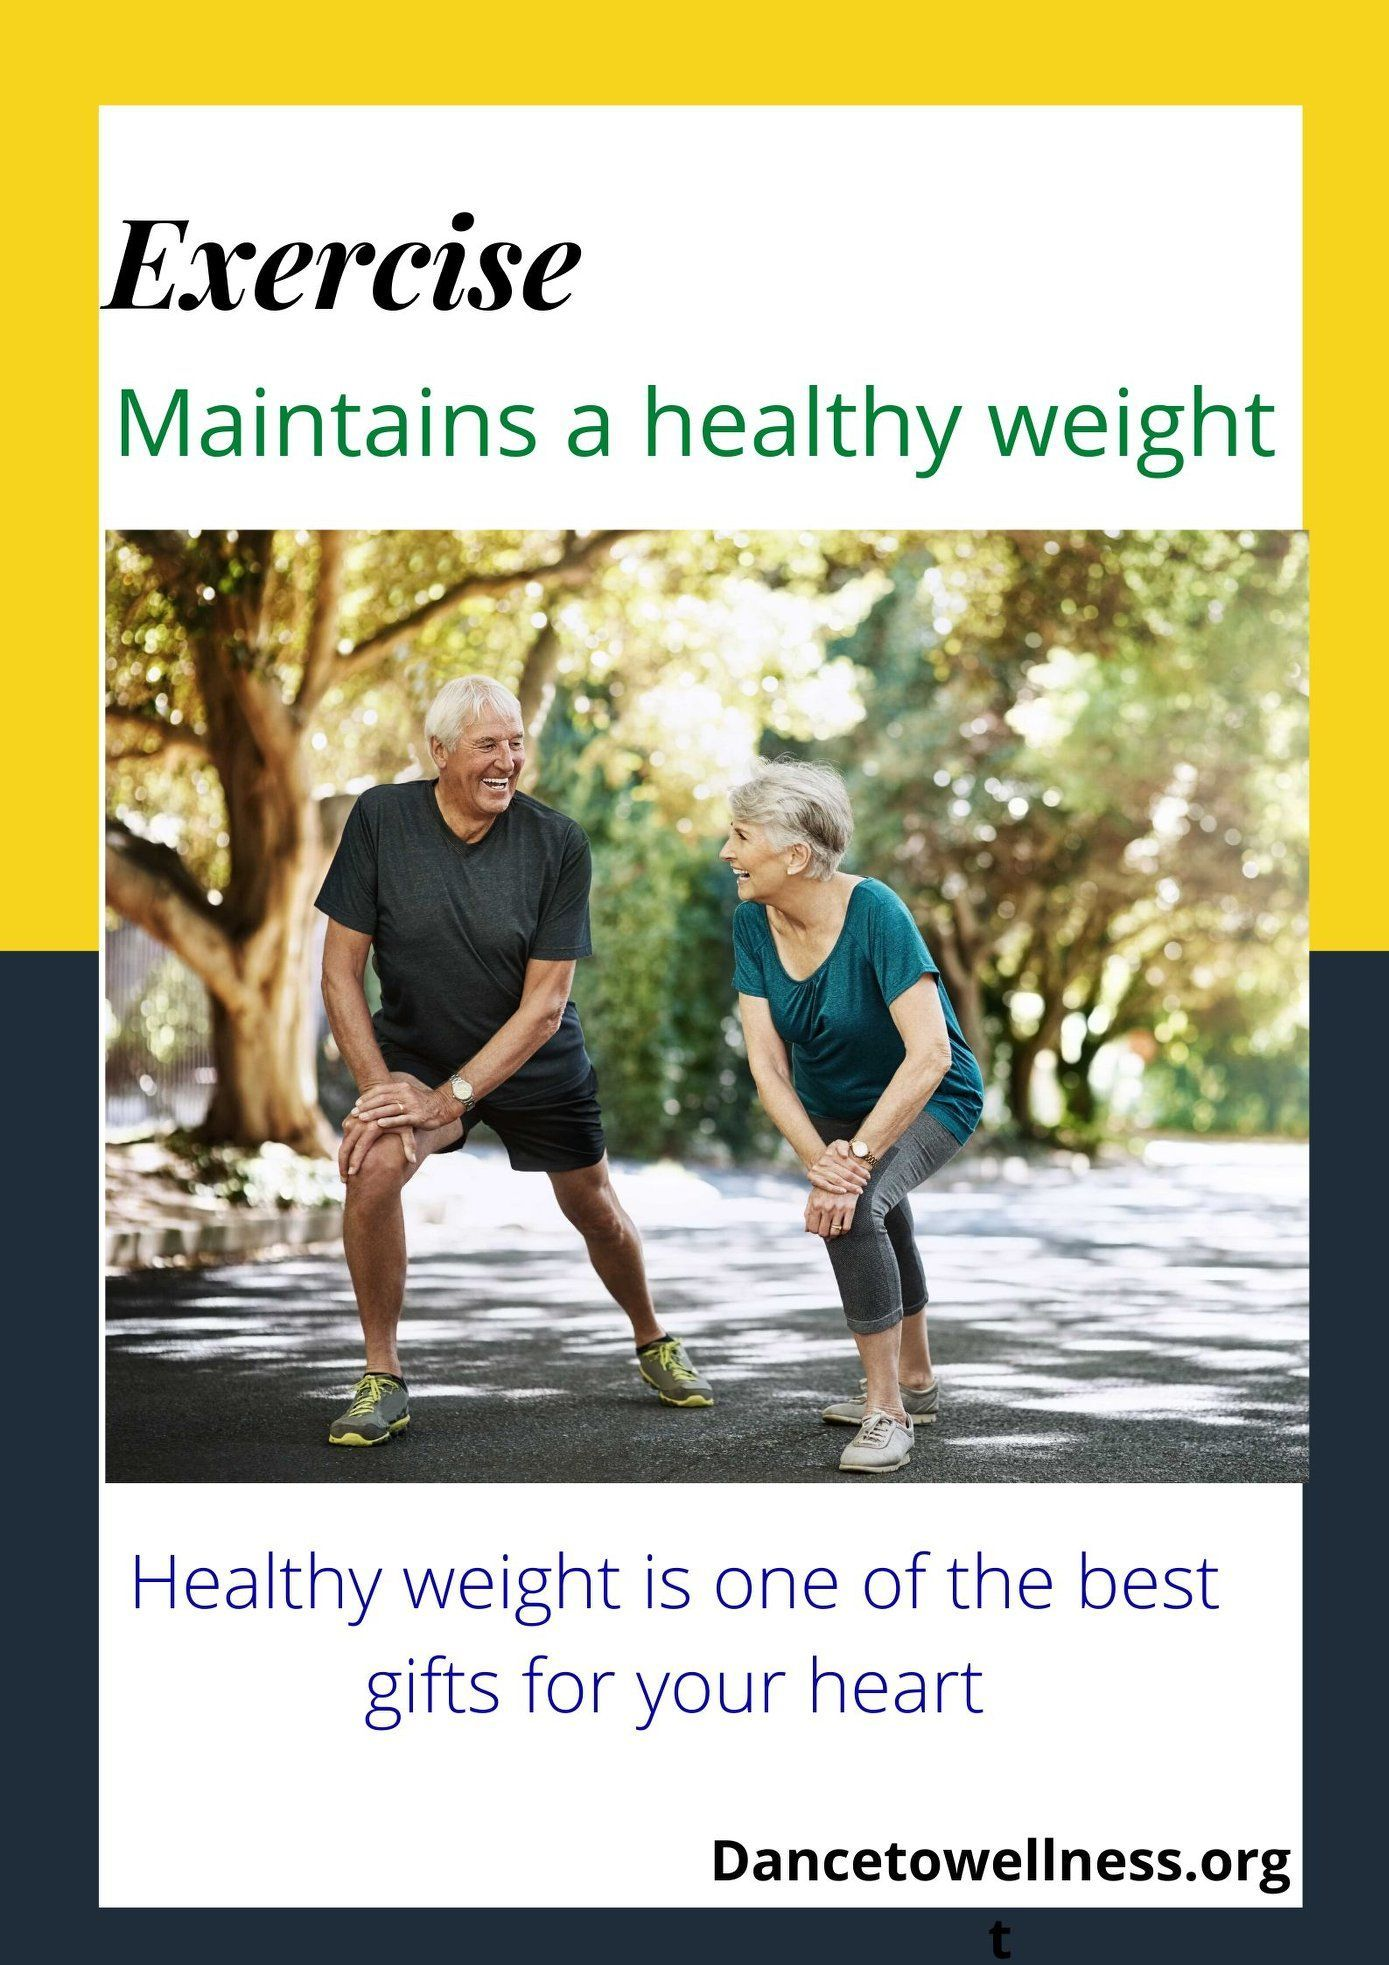 Maintaining a healthy weight is one of the best gifts for your heart. As we grow older, we tend to become less active, our bodies gains excess weight, which makes the heart to work harder. Exercise helps us to maintain a healthy lifestyle and reduce excess weight. #Weight #Heart #Fitness #DTW